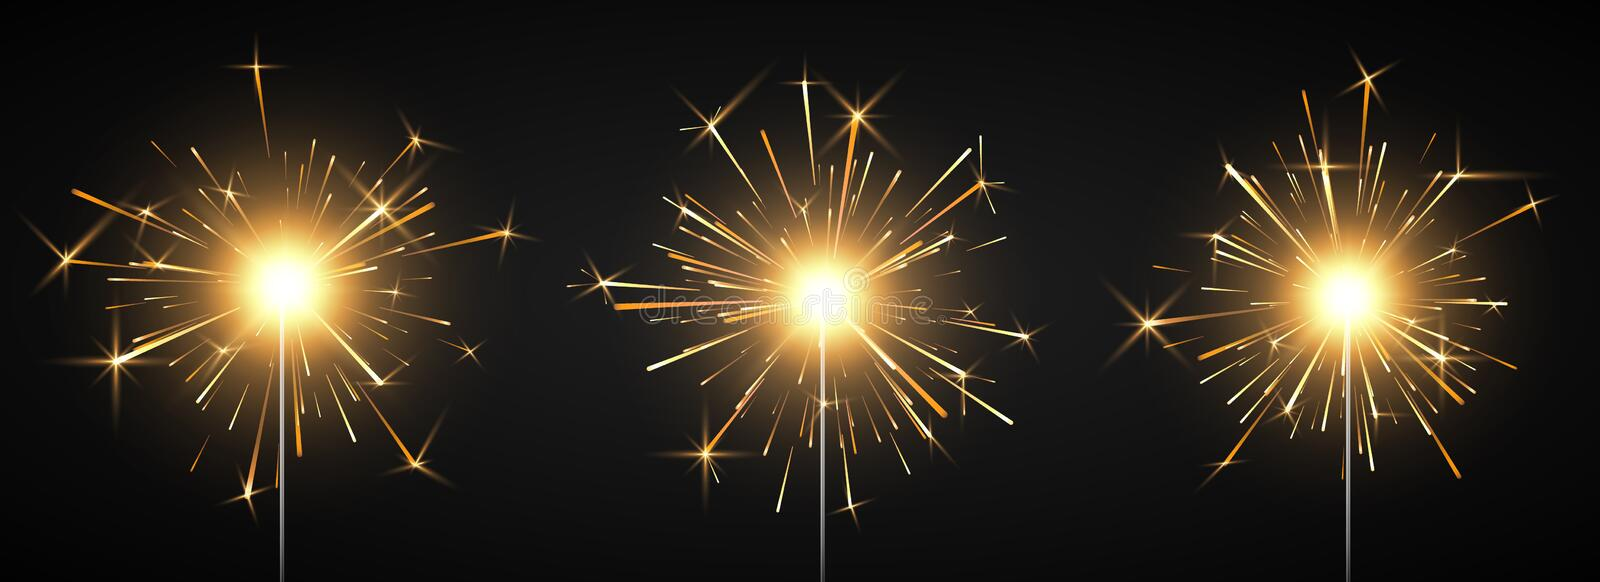 Burning shiny sparkler firework. Bengal fire. Party decor element. Magic light. Vector illustration isolated on black background.  vector illustration